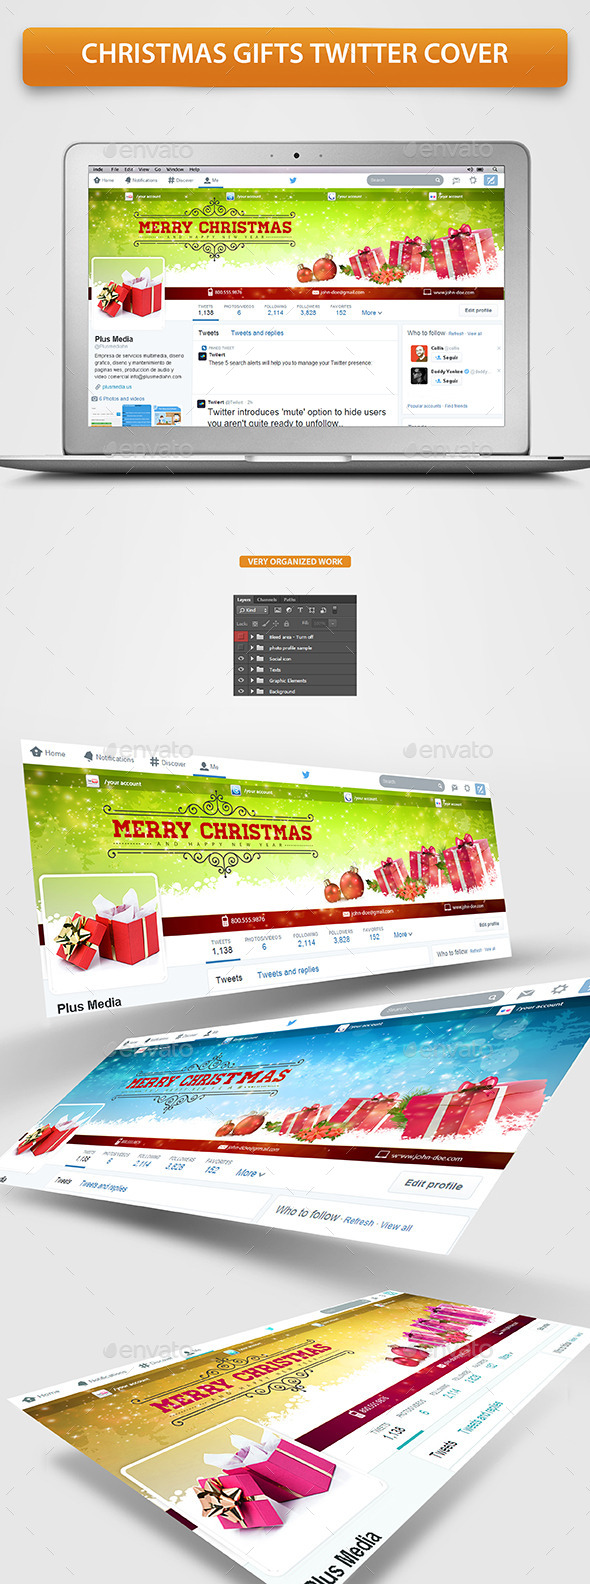 Christmas Gifts Twitter Profile Cover - Twitter Social Media